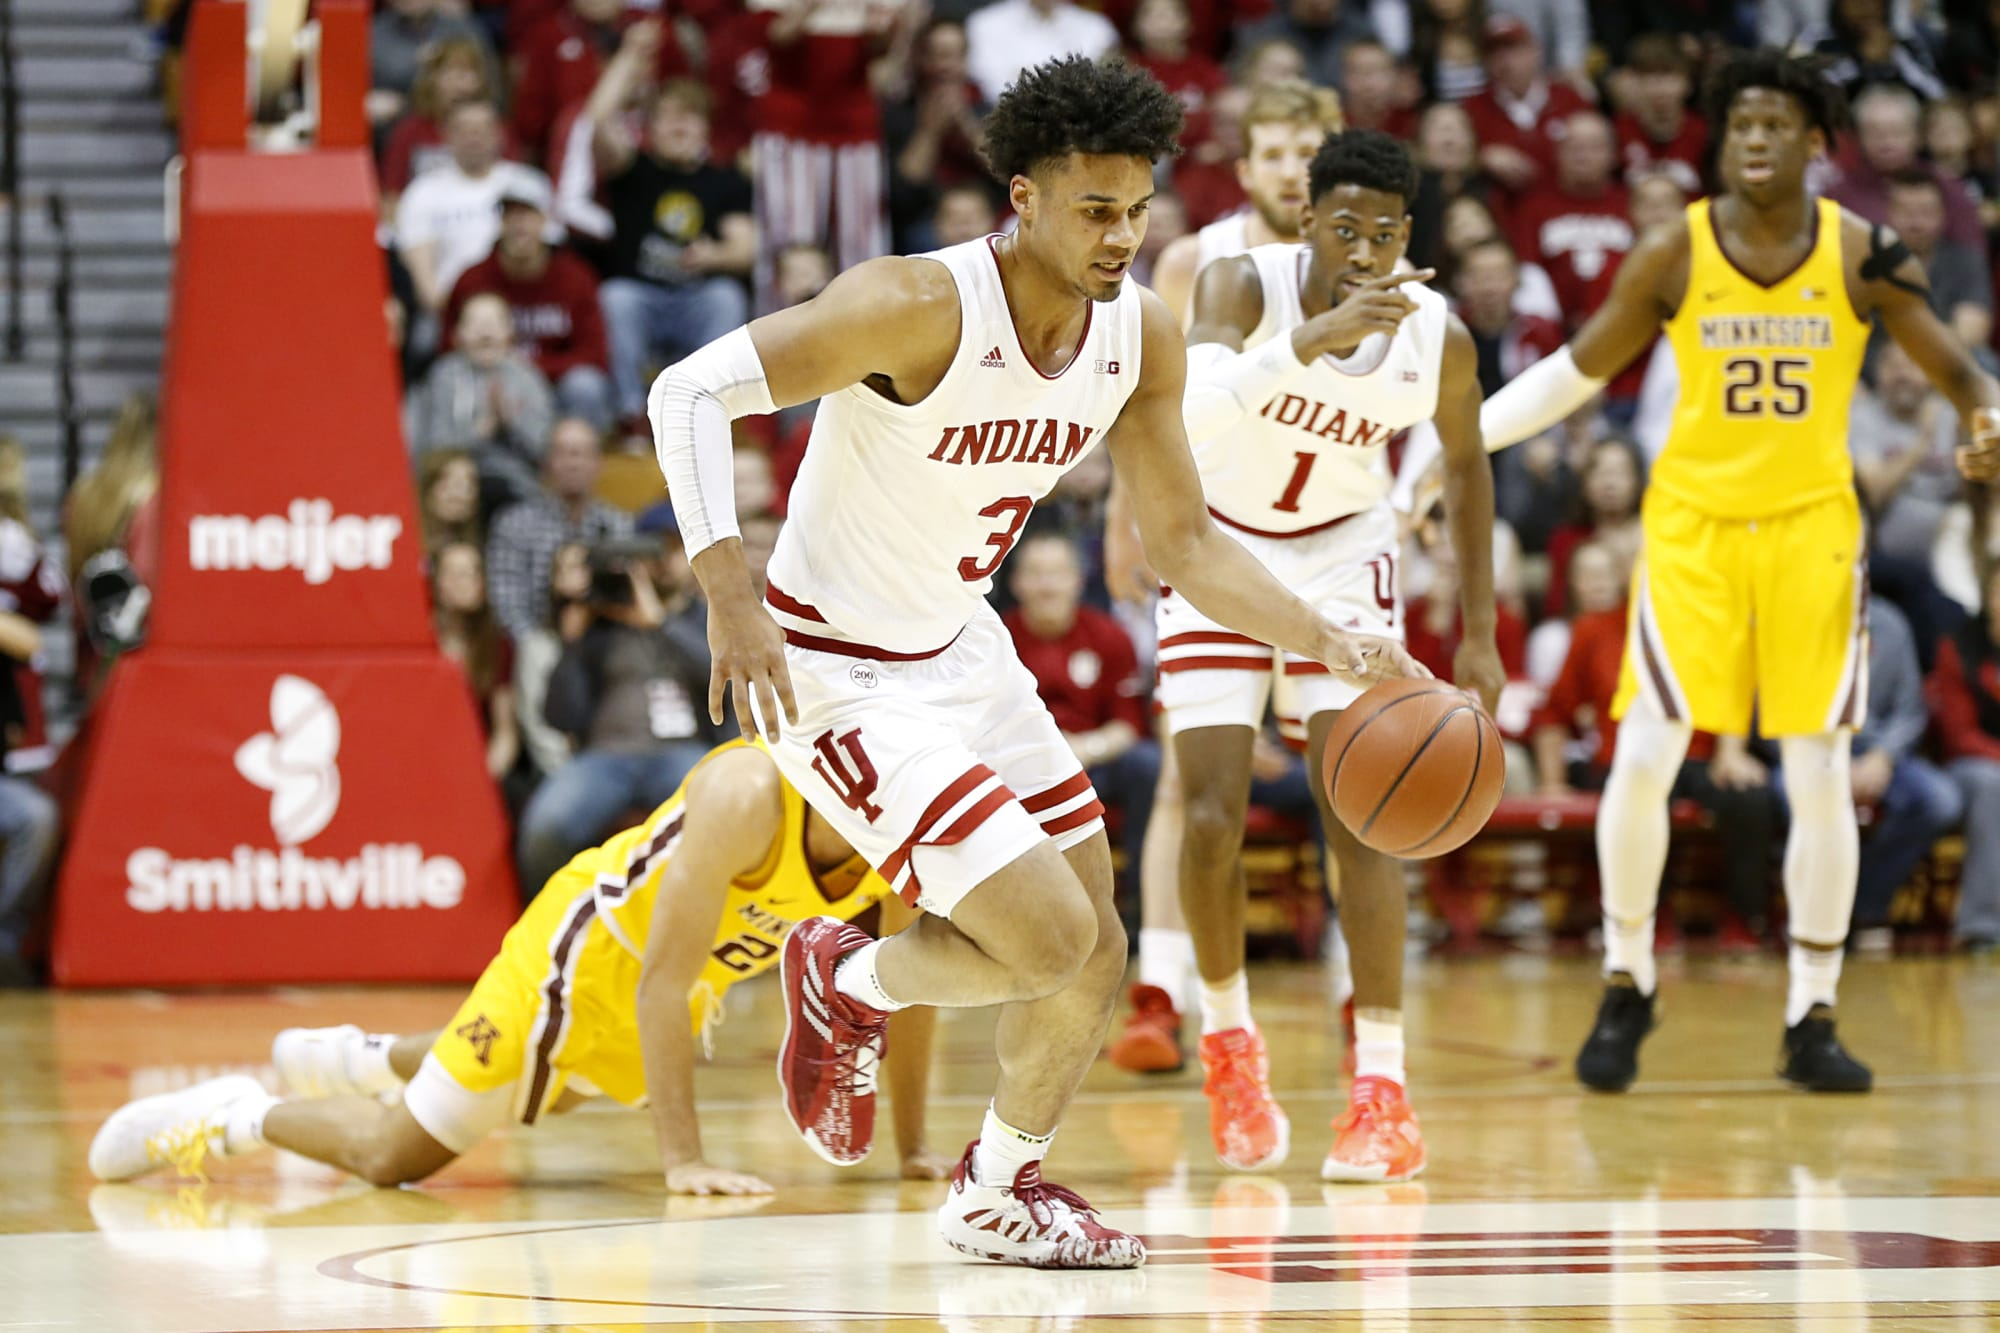 Miami basketball should recruit Indiana graduate transfer Justin Smith